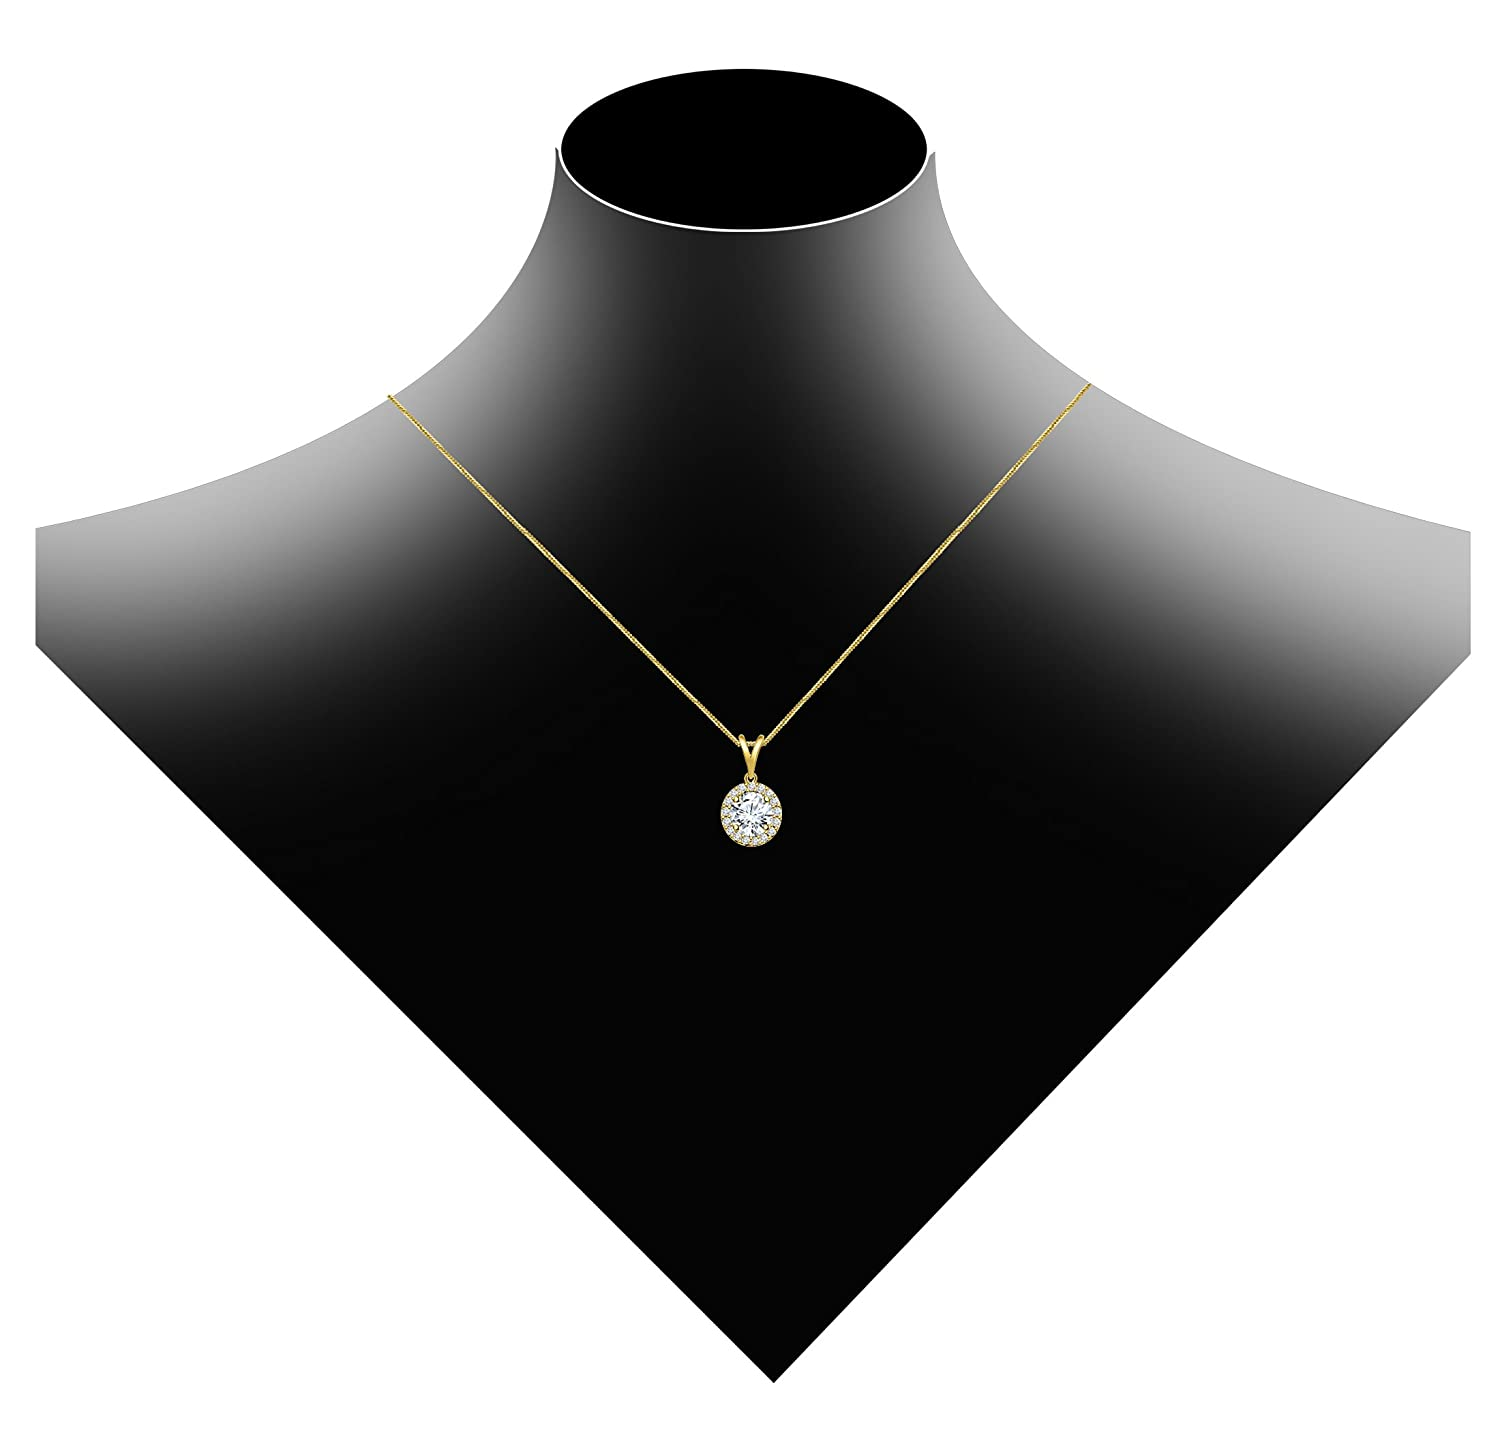 DiscountHouse4you 1.13 ct Round Cubic Zirconia Halo Round Circle Solitaire Pendant Necklace in 14k Yellow Gold Plated Gift for Womens Girls